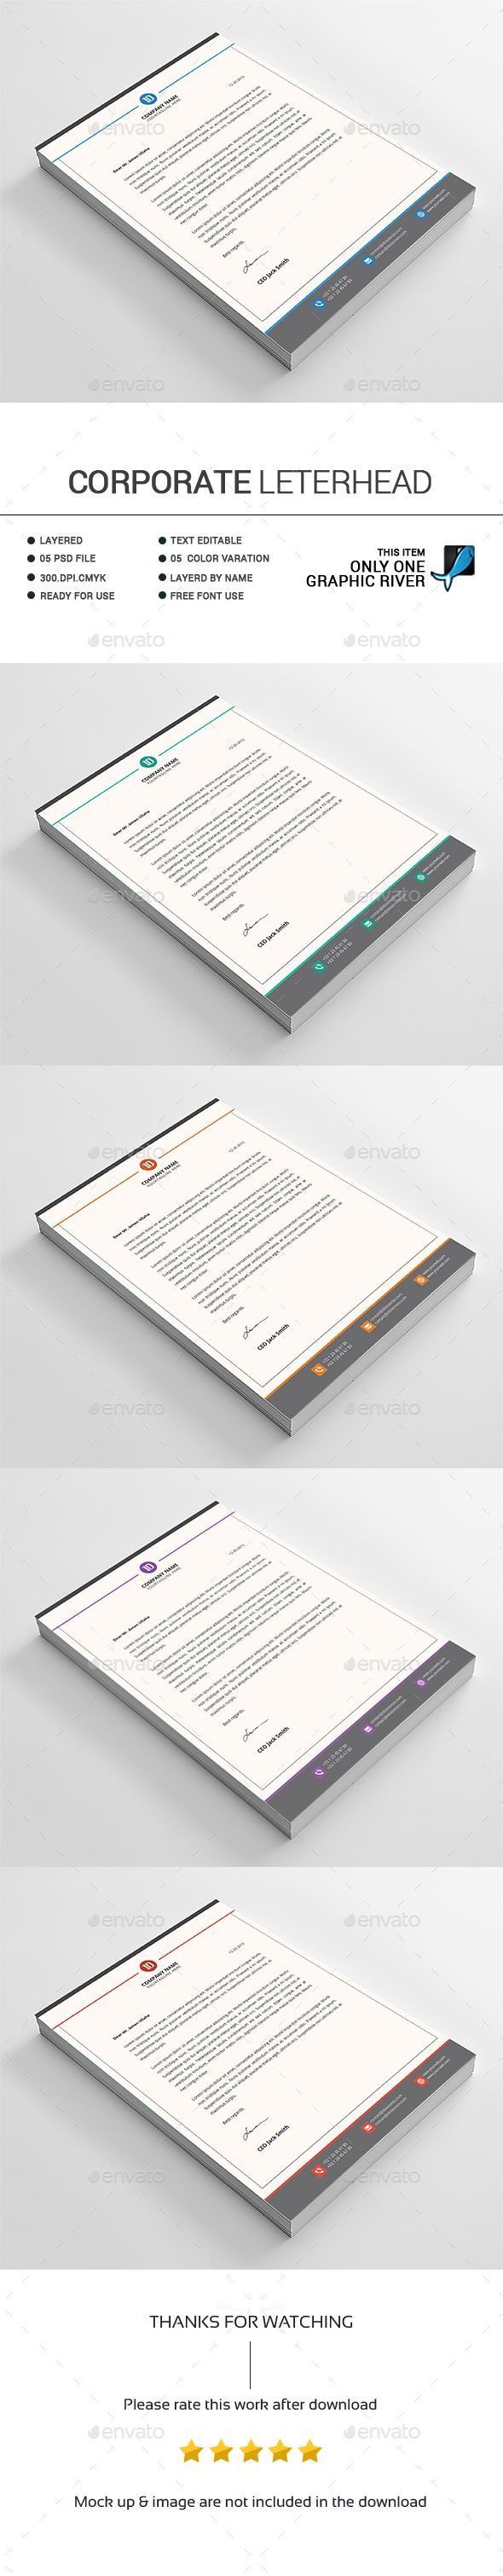 Best Letterhead Template Images On   Letterhead